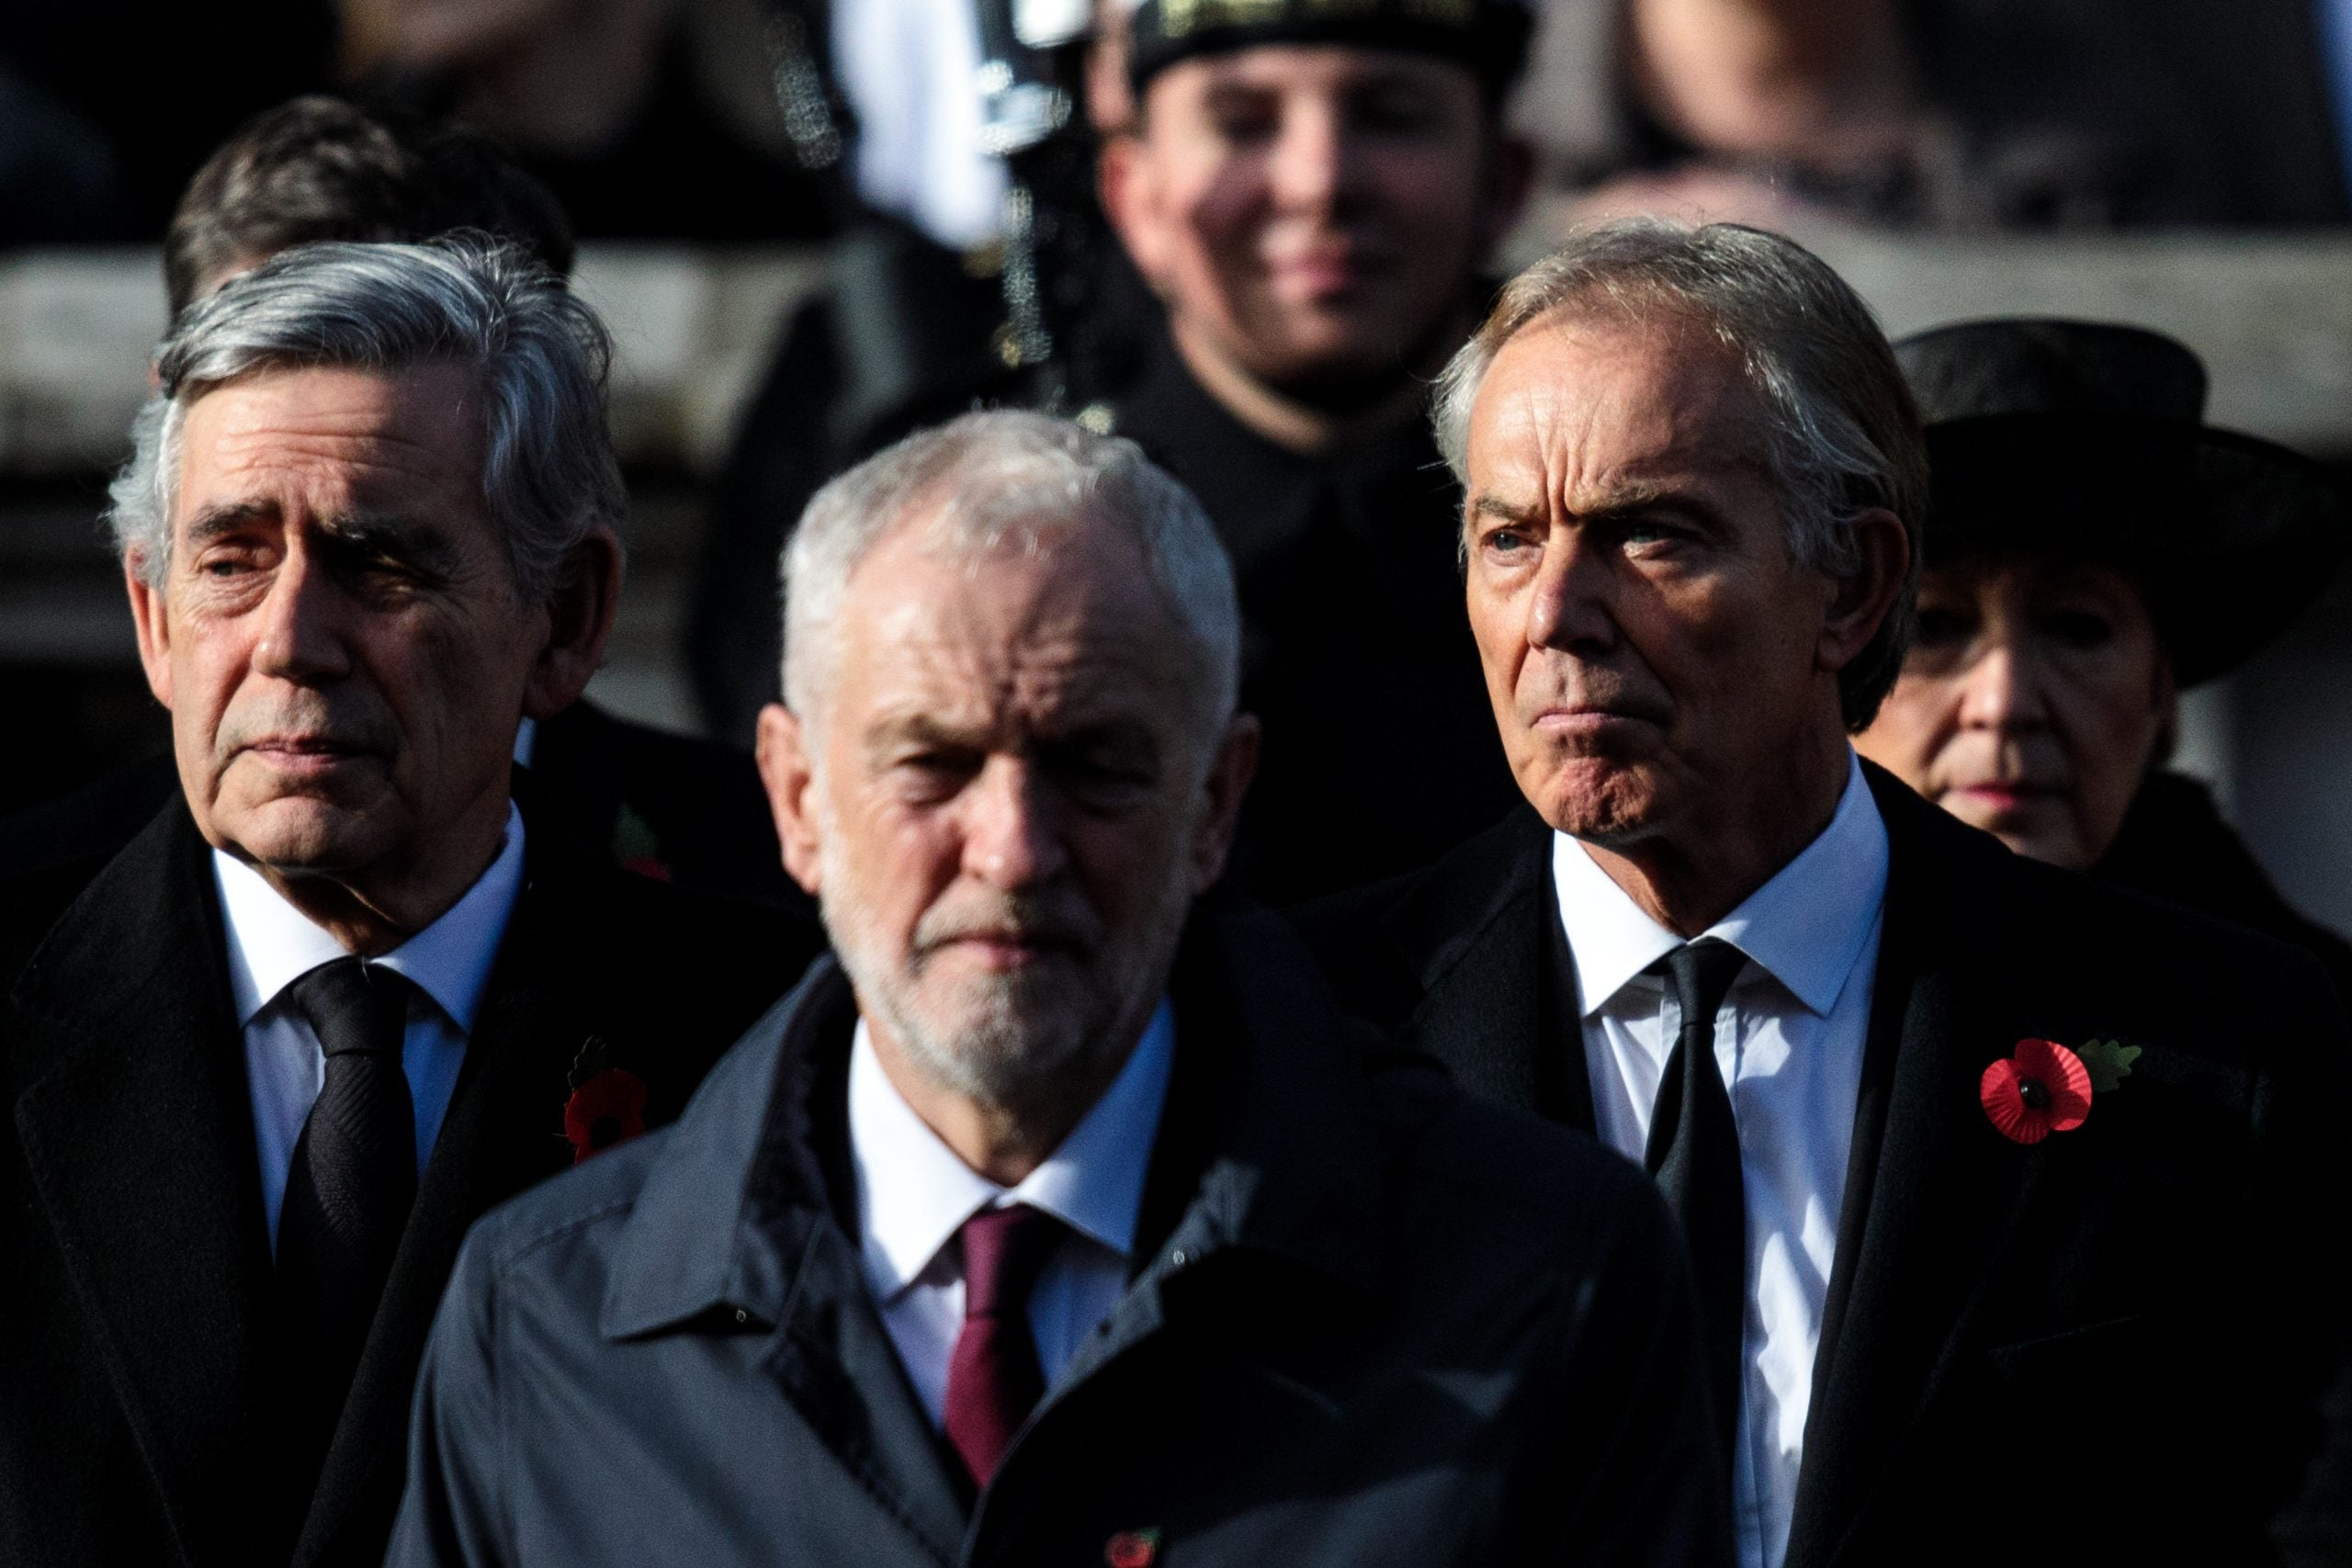 The Blairites and then the Corbynites have led Labour into a dead end. But there is a way back